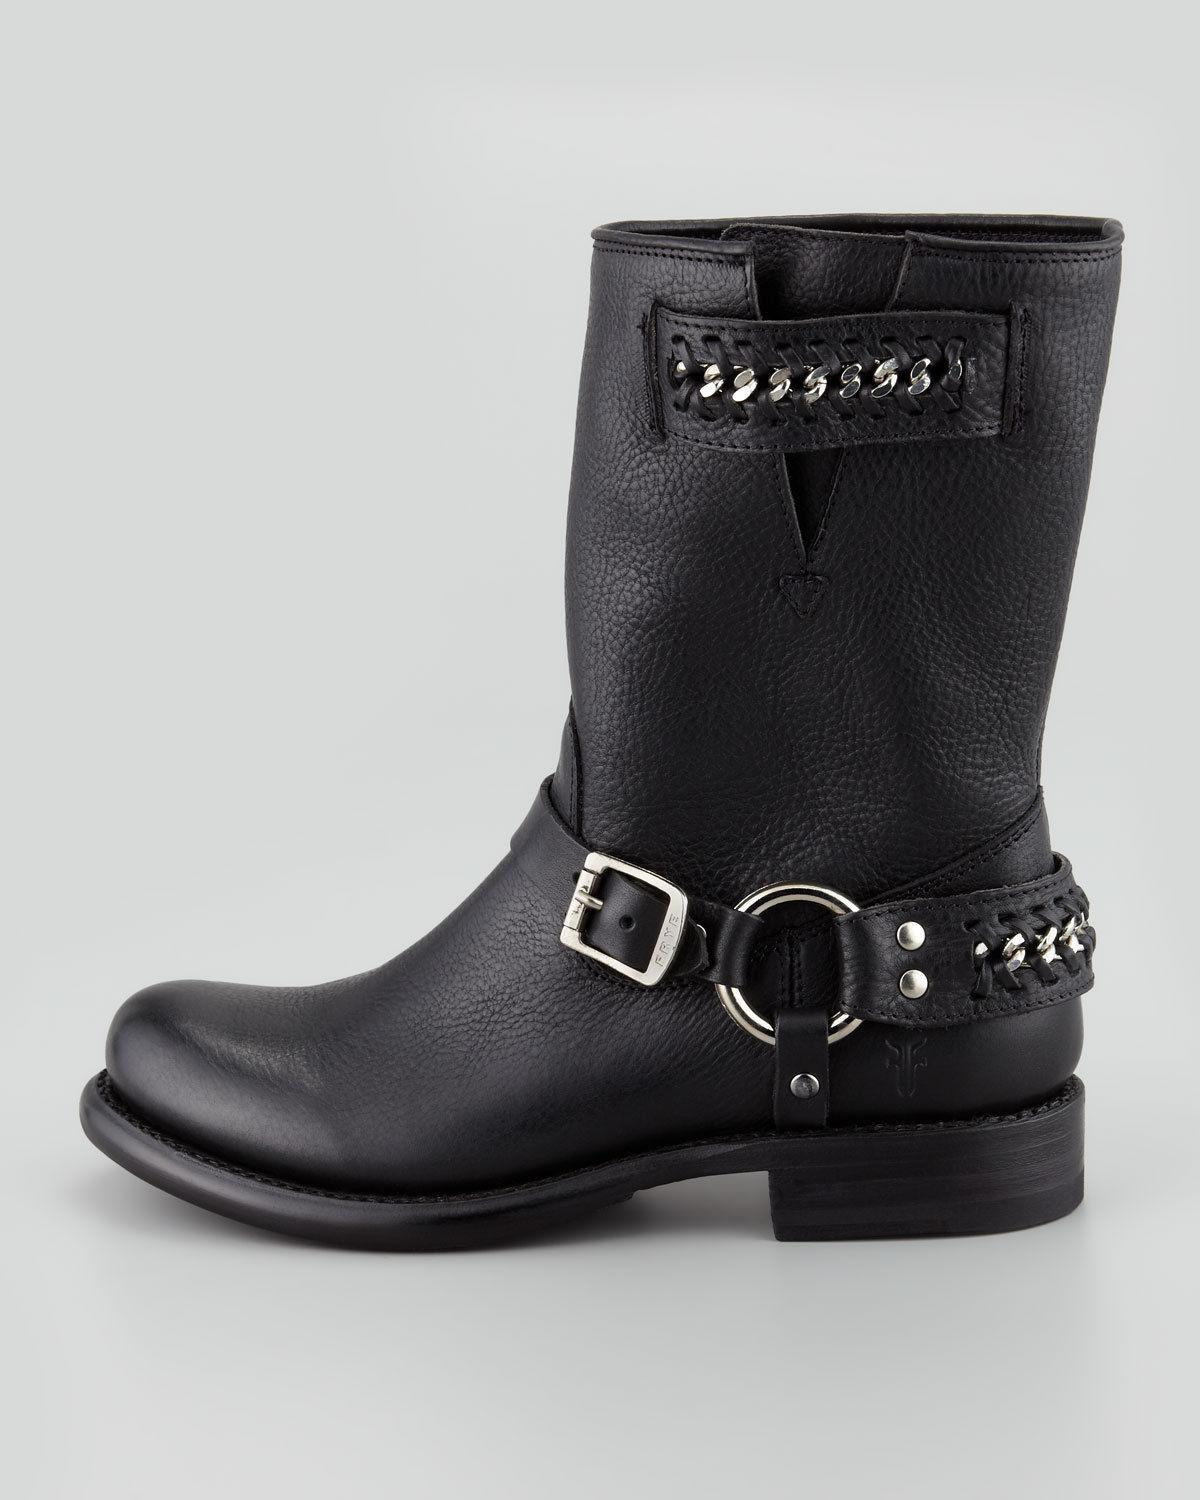 $438 Frye Jenna Chain Harness Stud Black Leather Boot Riding Cowboy Booties 6.5